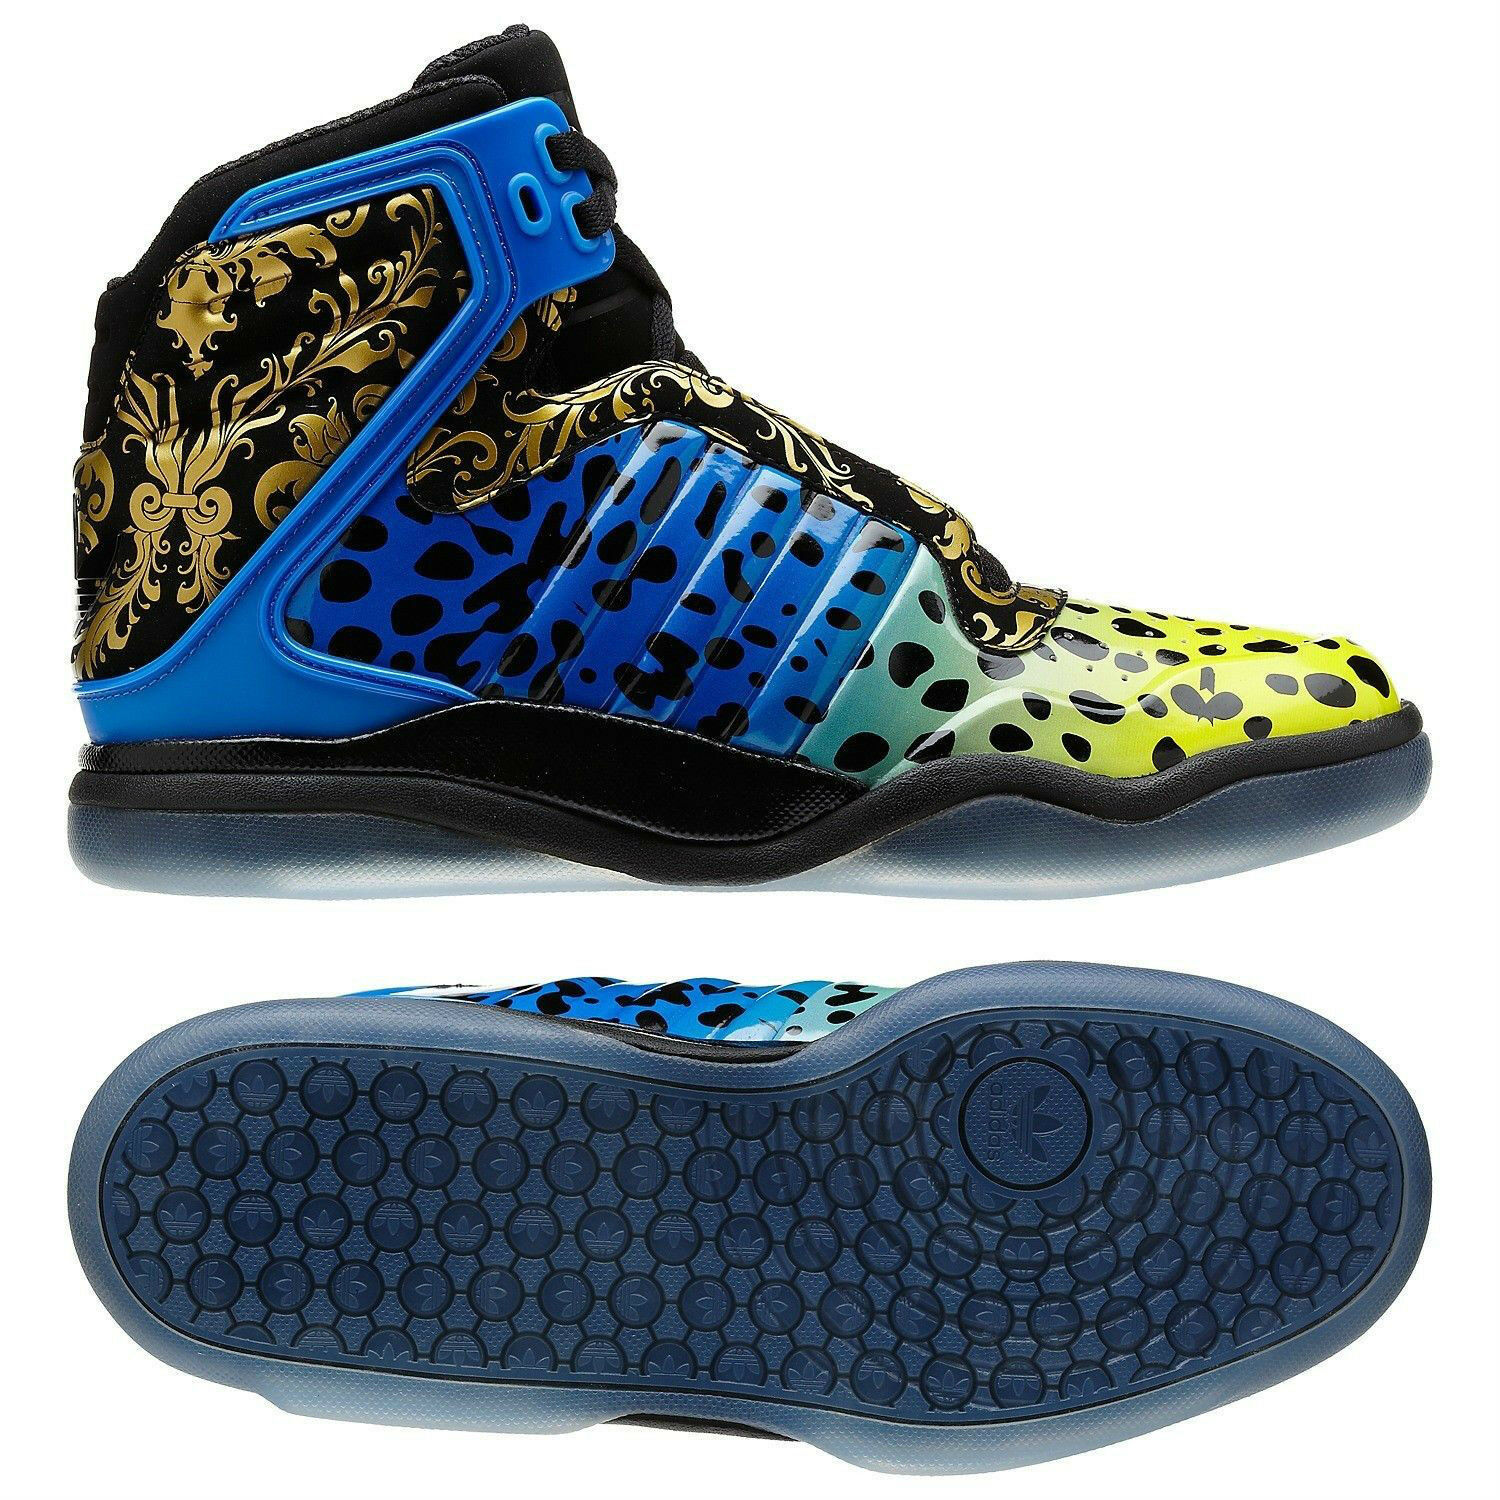 Adidas TS Lite AMR Black bluee Yellow gold Floral Ice Poison Frog Q32942 shoes